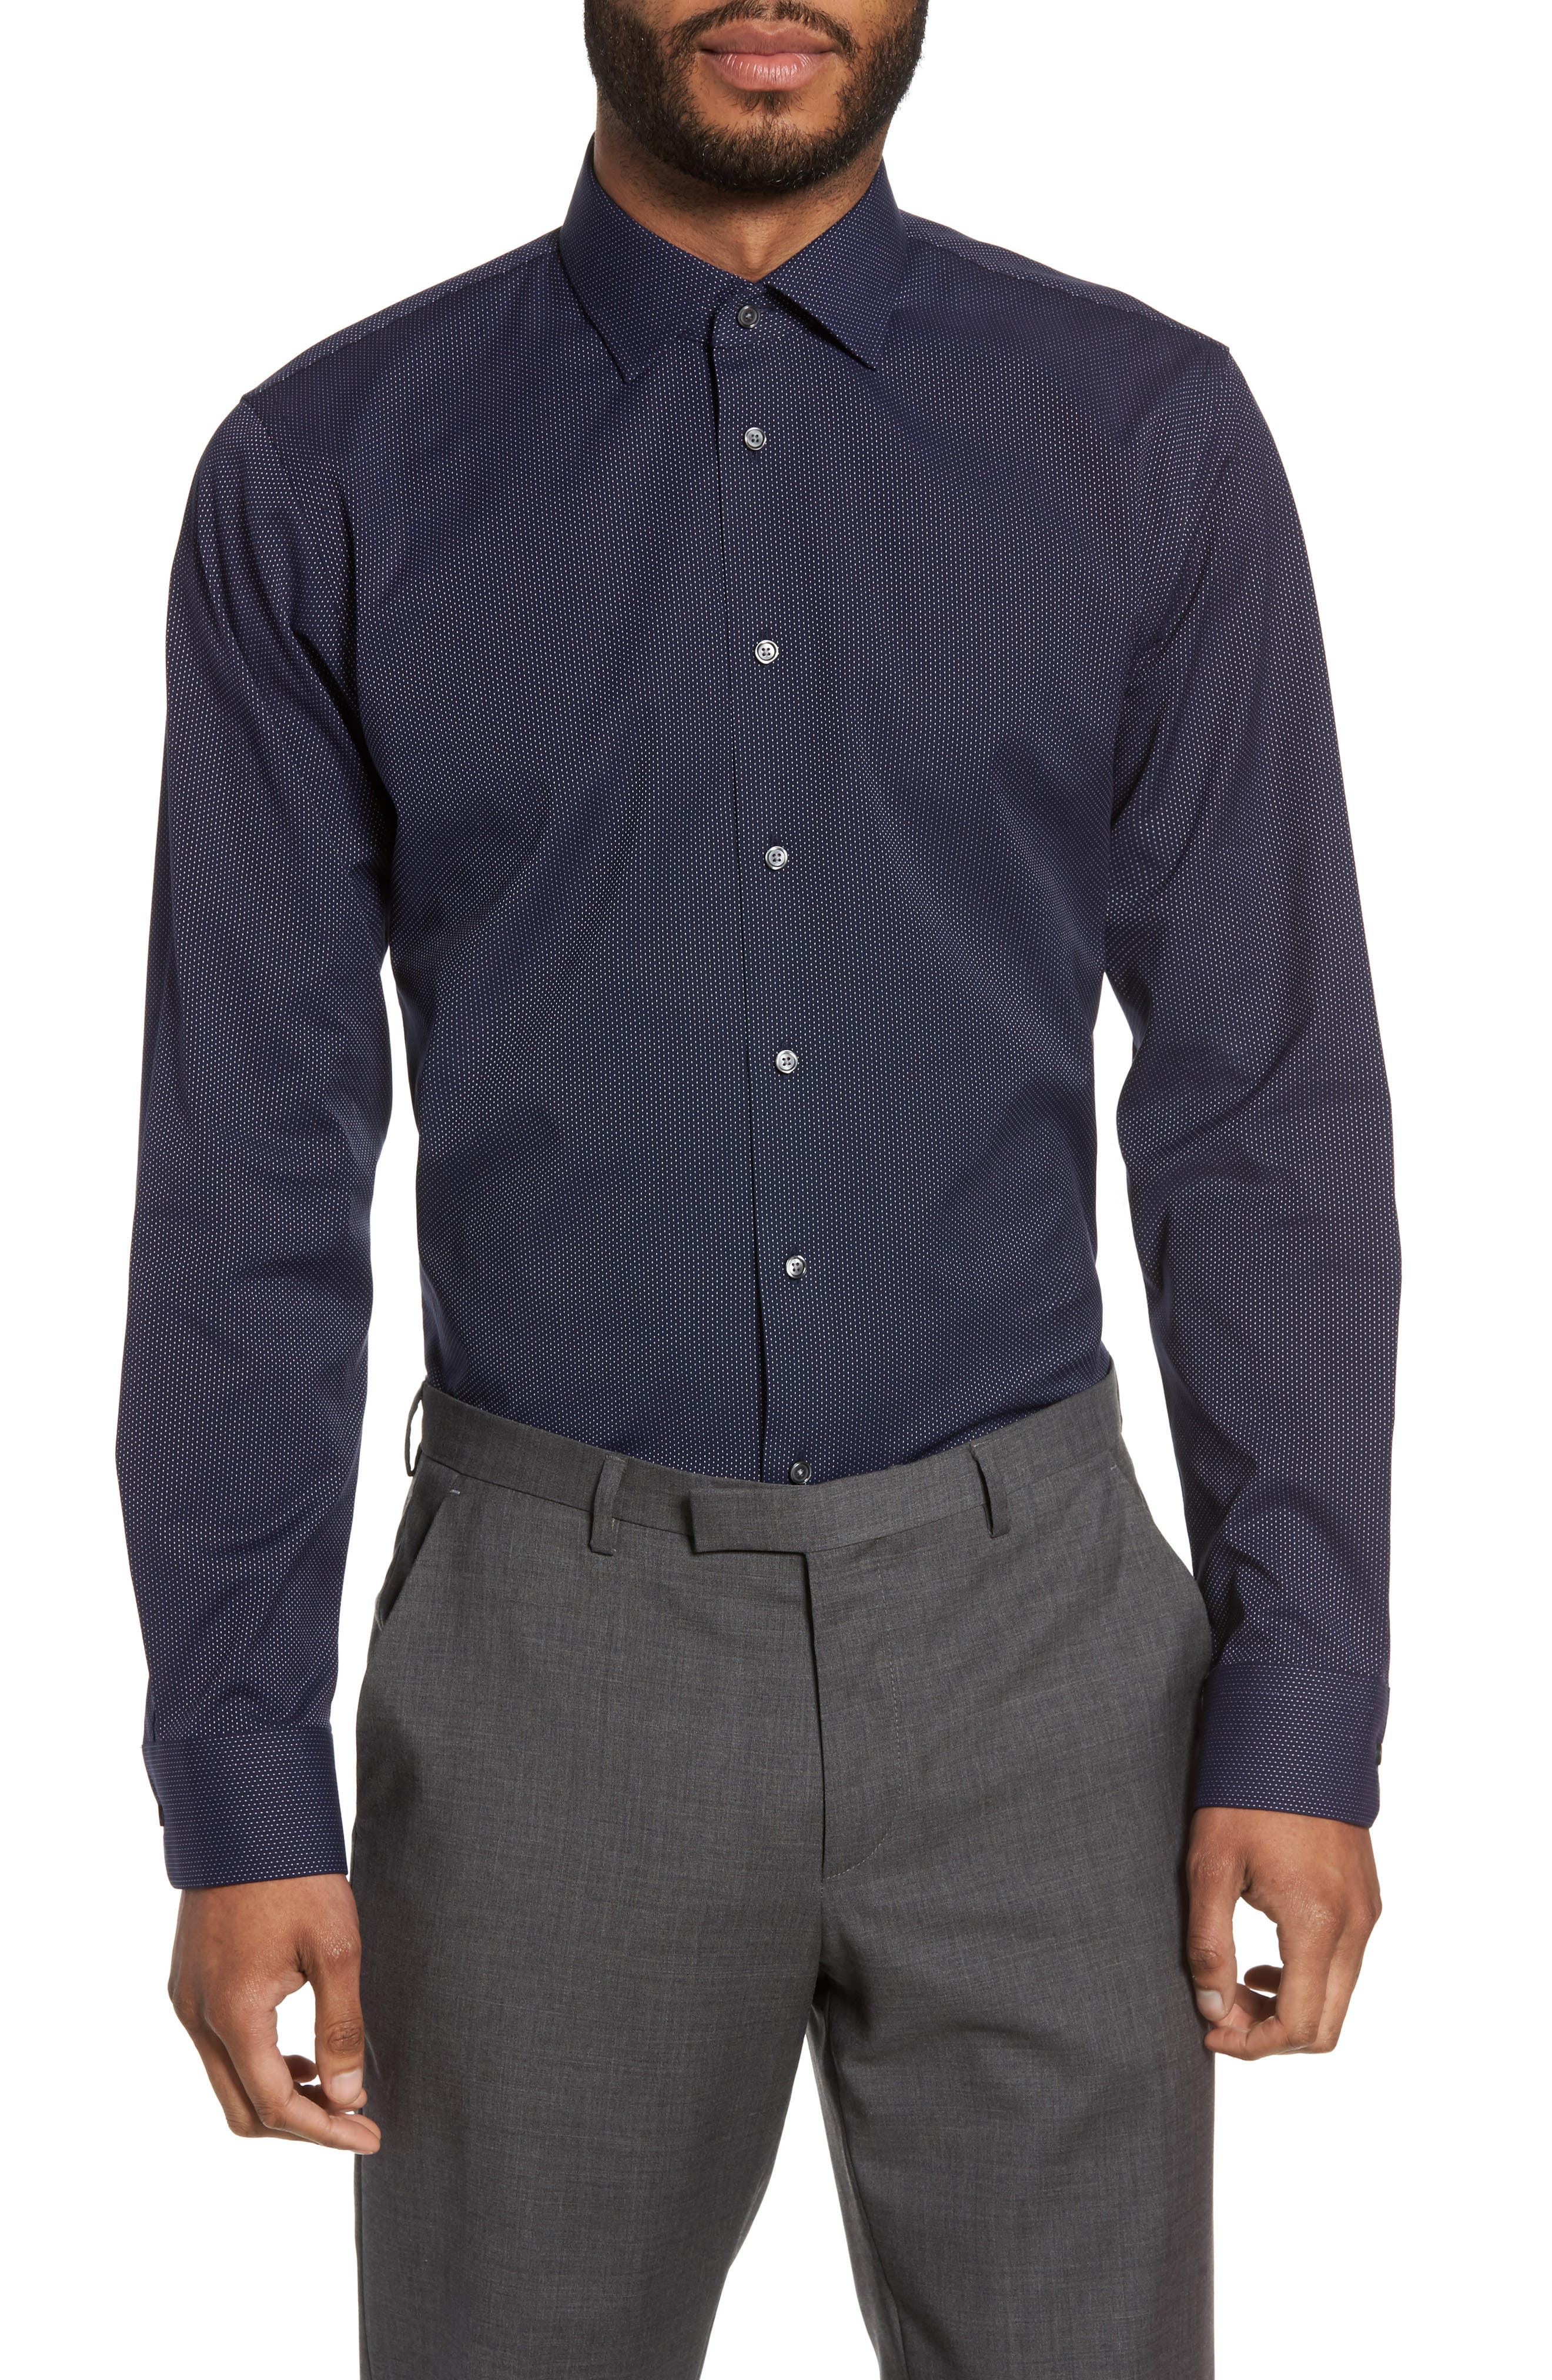 Trim Fit Non-Iron Microdot Dress Shirt,                             Alternate thumbnail 2, color,                             Navy Peacoat